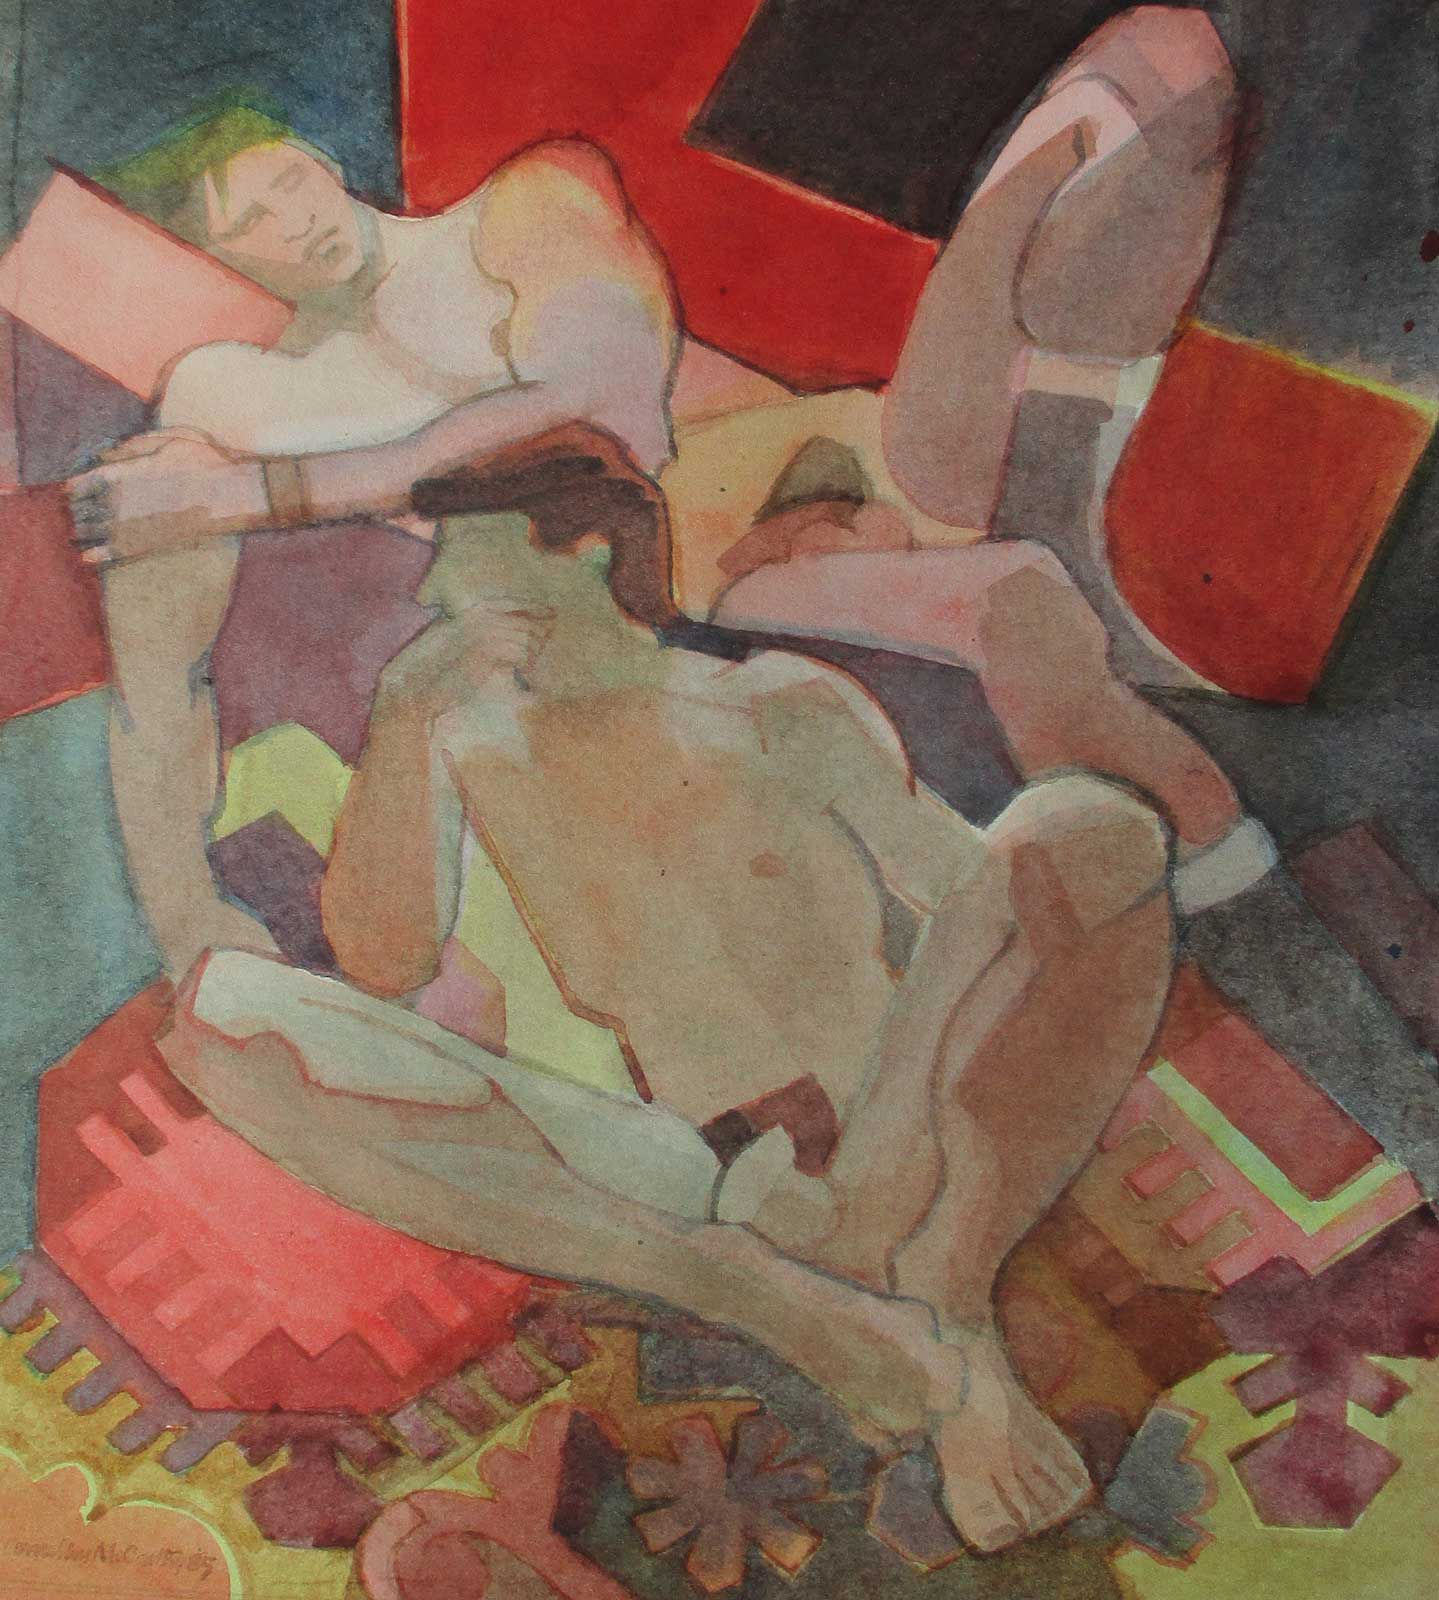 Unframed version Resting Nudes by Cornelius McCrarthy